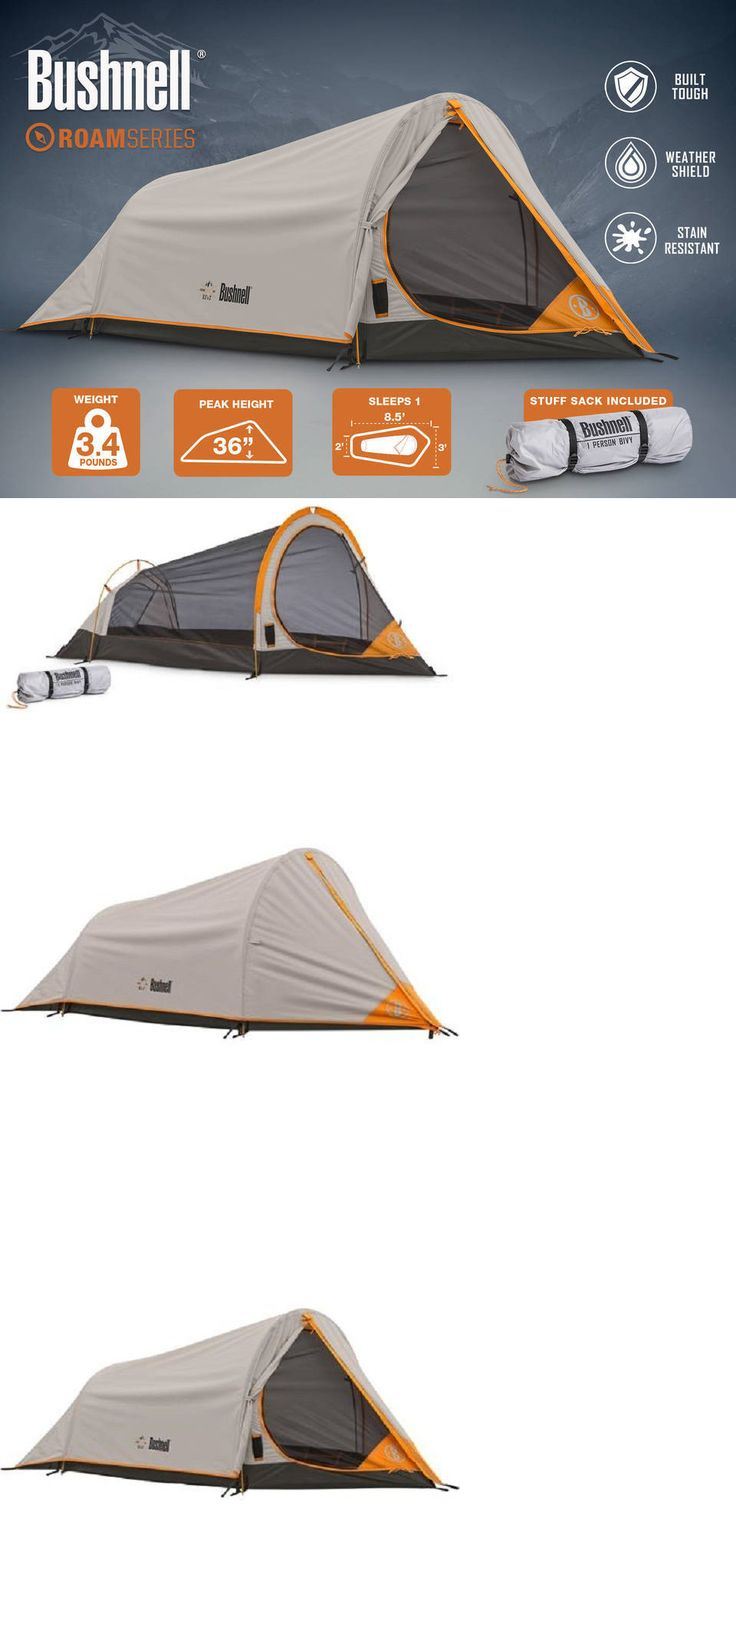 Tents 179010 1 person tent 8 5 x3 bushnell 4 season shield backpacking tent hunting